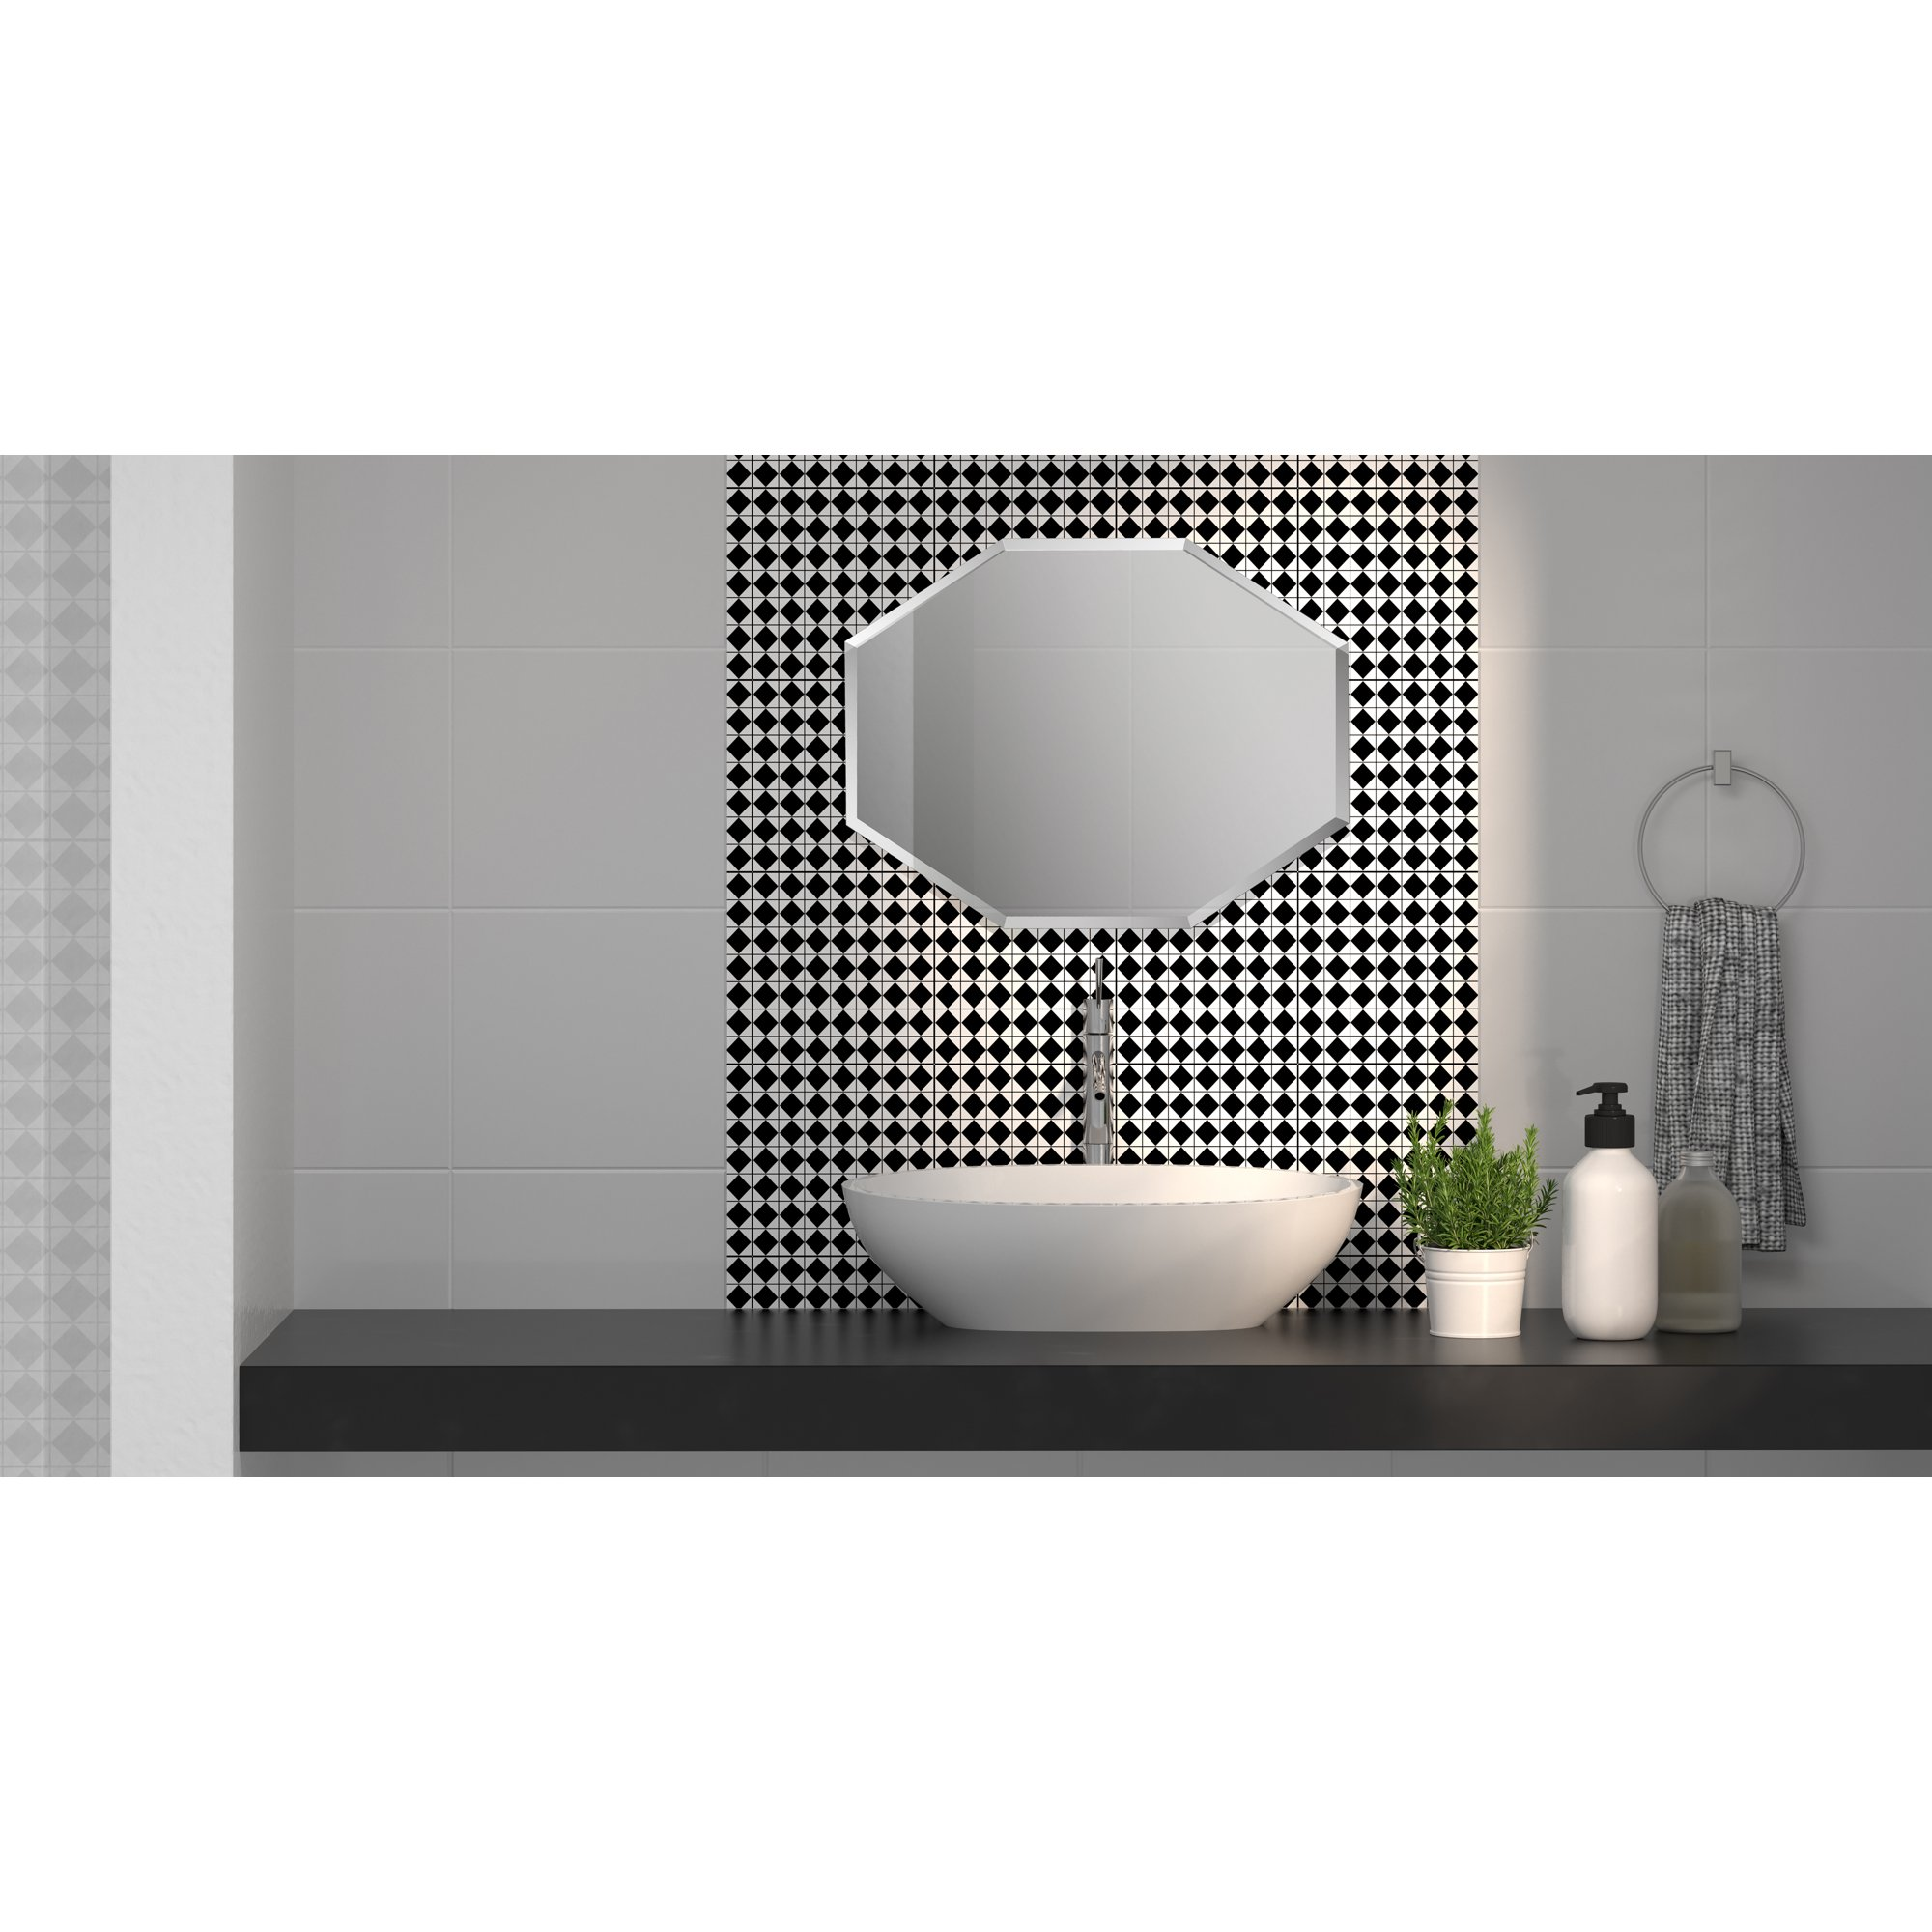 Mirrorize Canada 28x22 Inches Frameless Beveled Octagon Mirror Silver Geometric Hanging Modern No Frame Industrial Accent Wall Mirrors For Bathroom Vanity Entryway Bedroom Walmart Canada